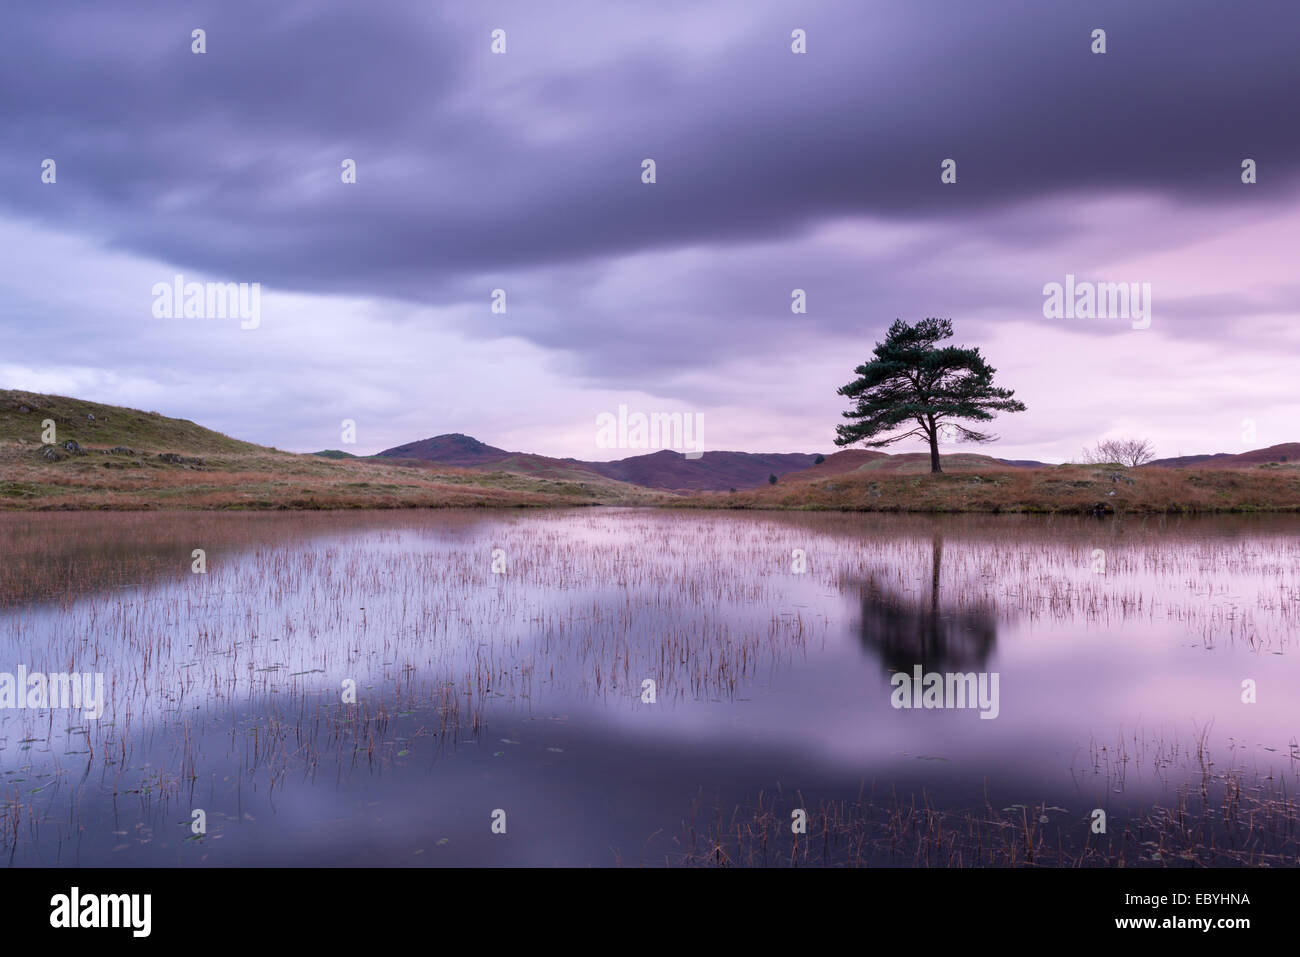 Kelly Hall Tarn au crépuscule, Lake District, Cumbria, Angleterre. L'automne (novembre) 2014. Photo Stock